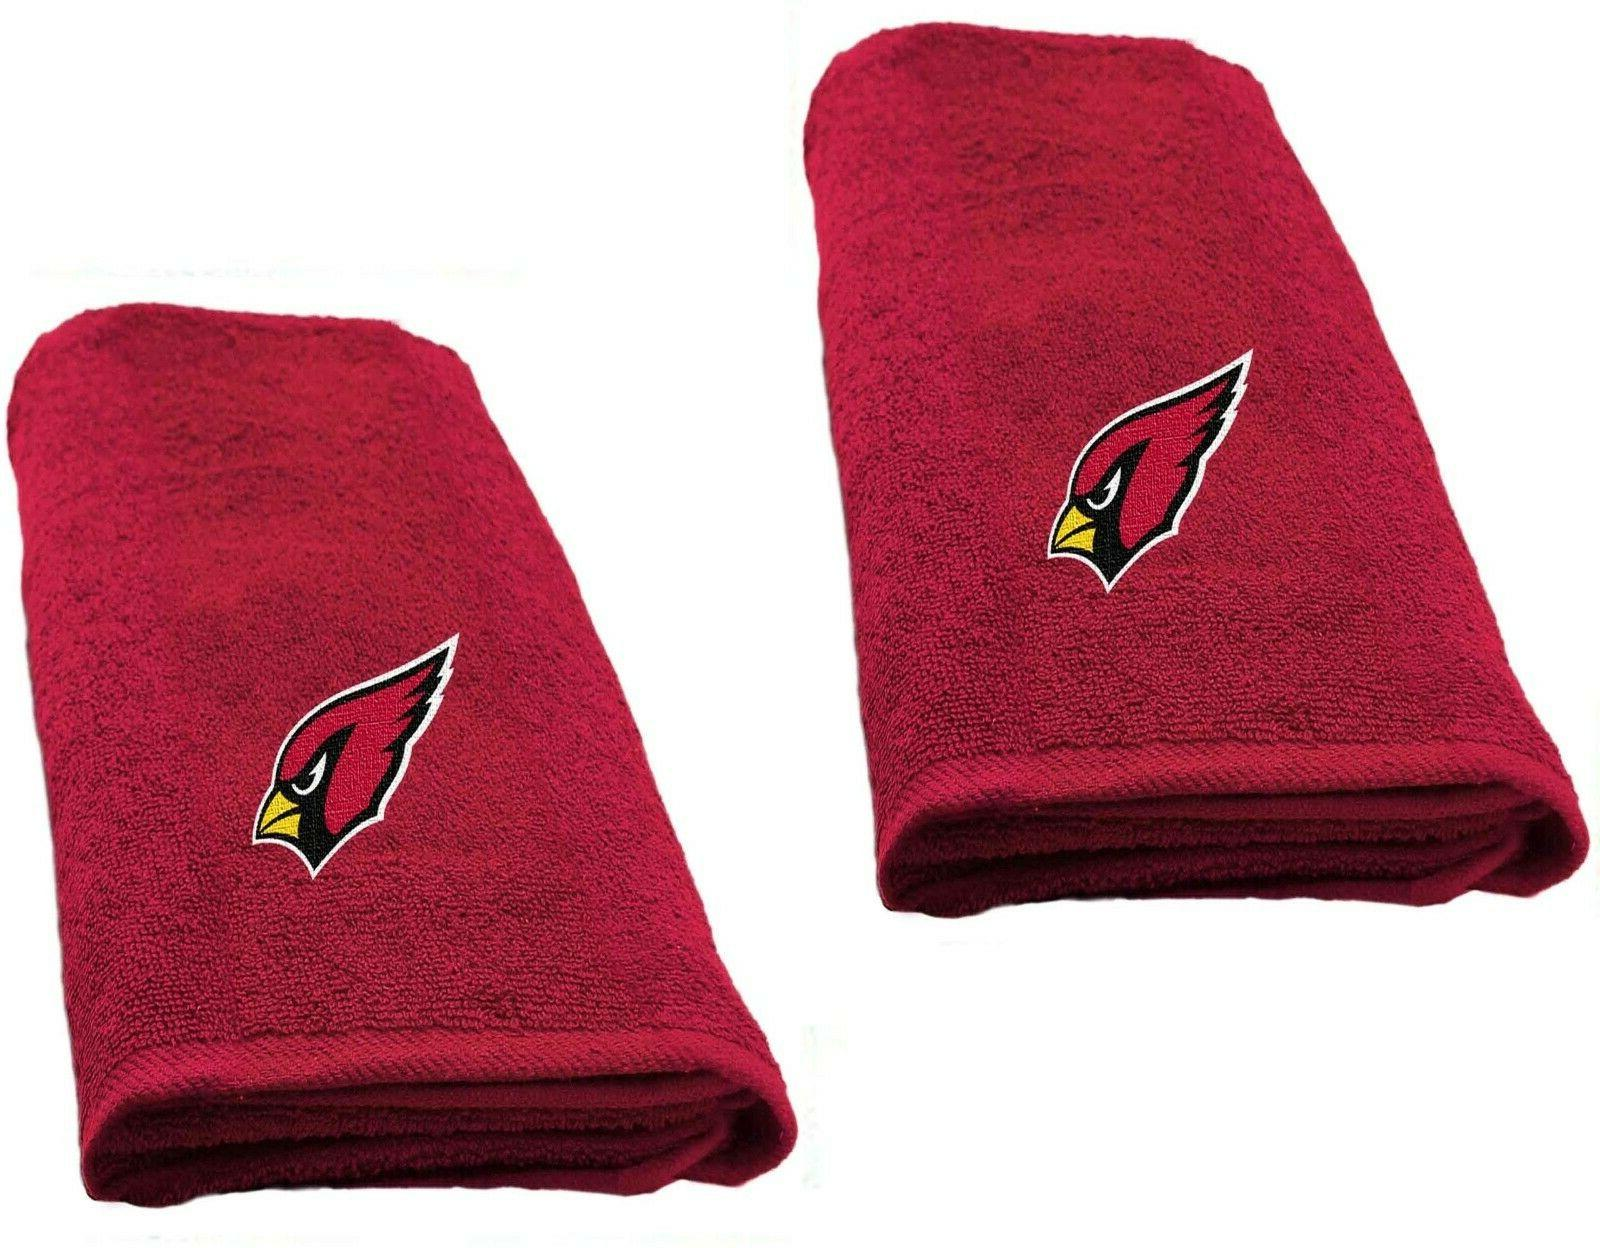 "Arizona Cardinals set of 2 Decorative 26"" x 15"" Hand Towels"